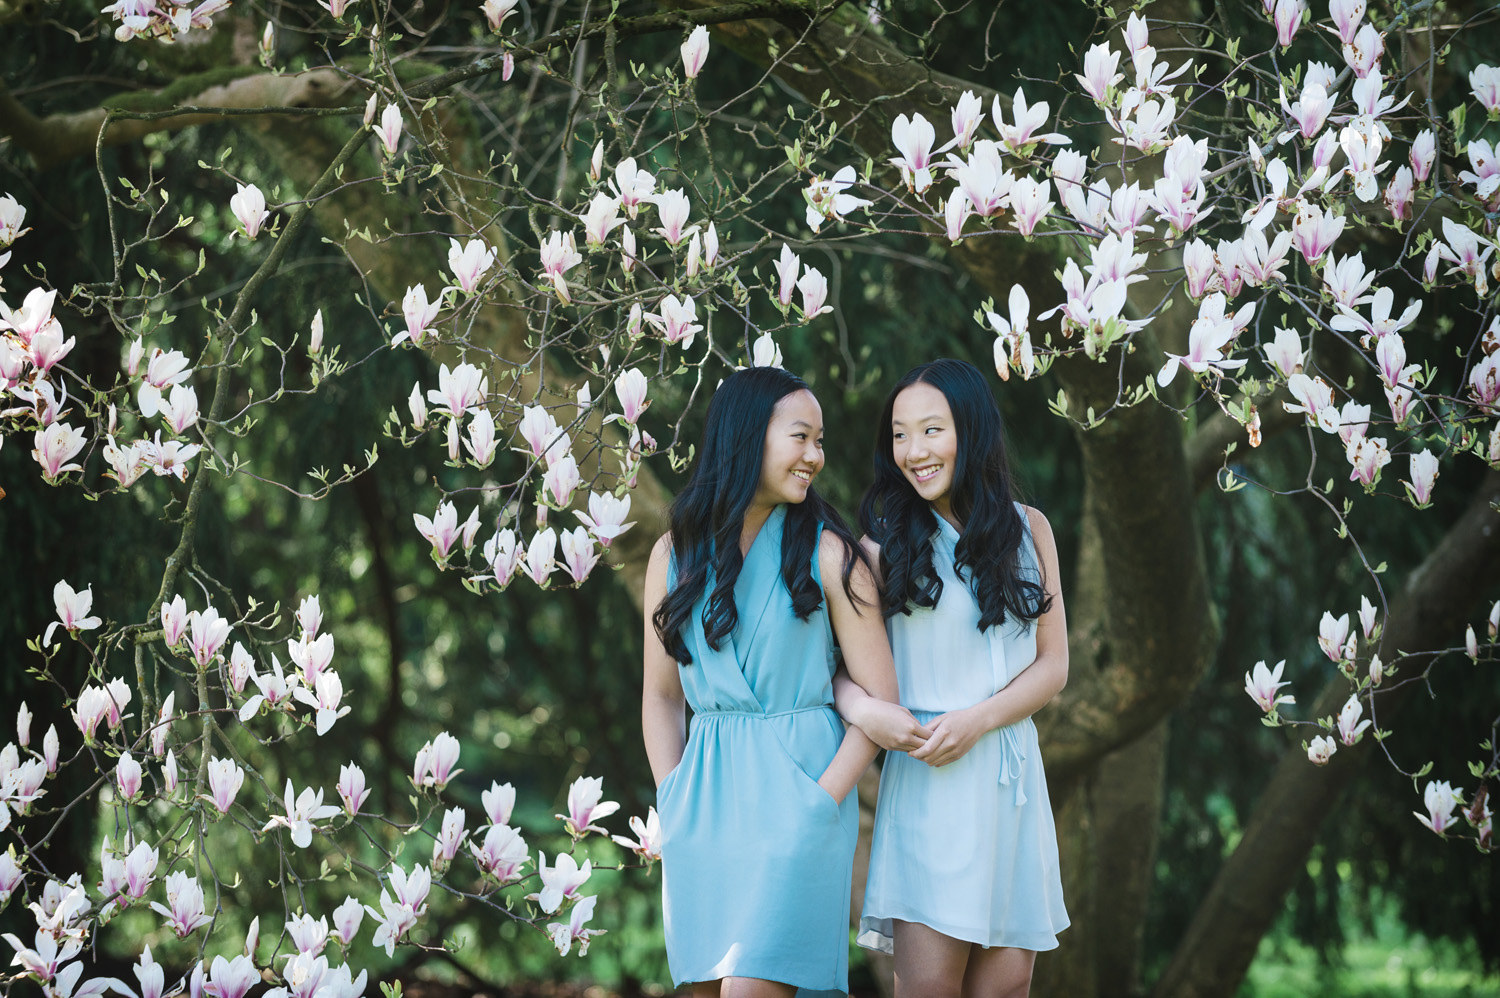 family-portraits-siblings-cherry-blossom-trails-vancouver-portraits-yaletown-photography-photo